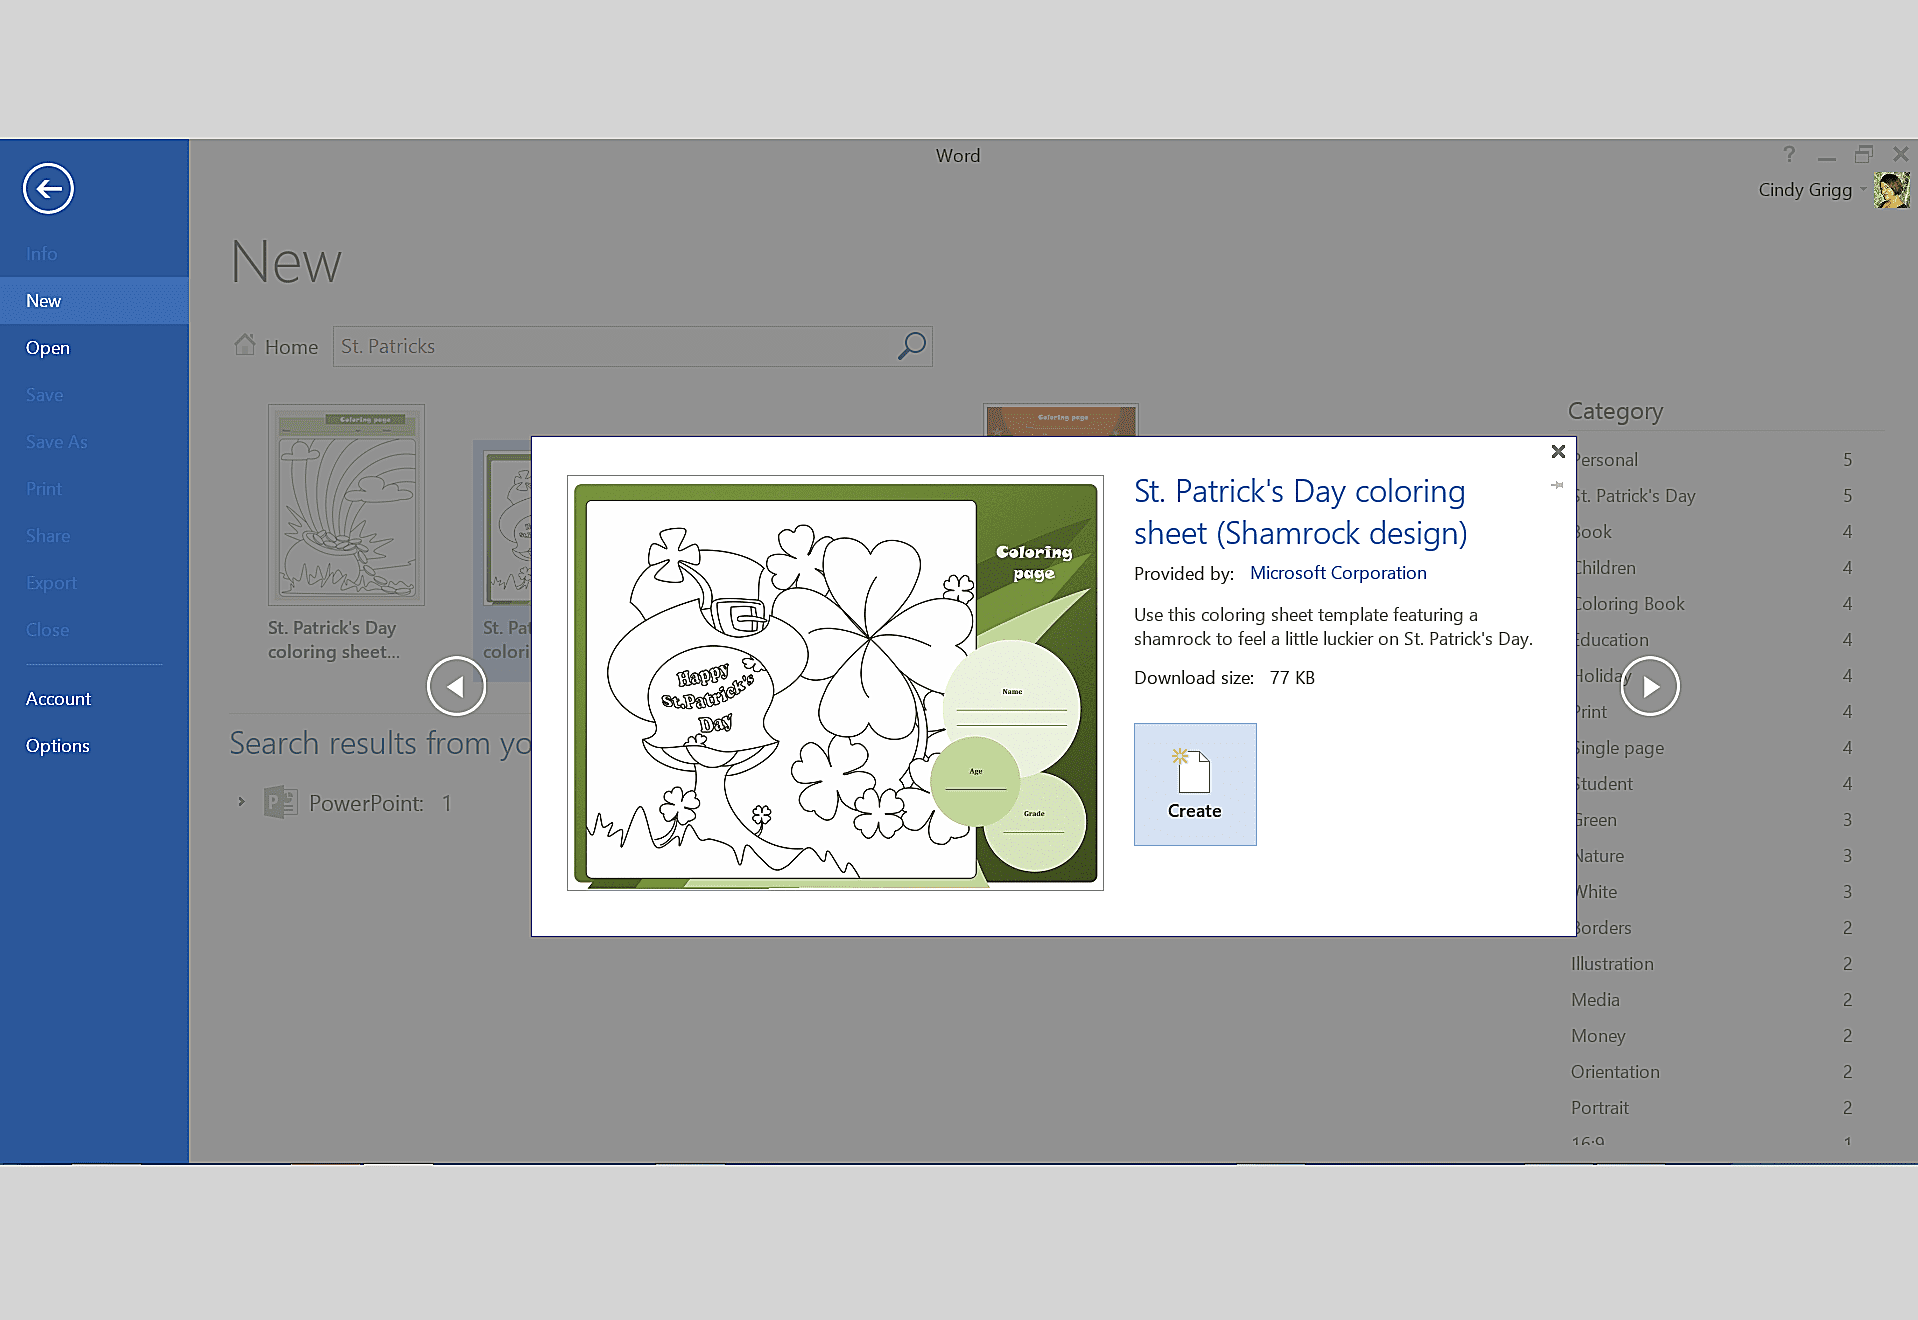 St. Patrick's Day Coloring Sheet Template for Microsoft Office